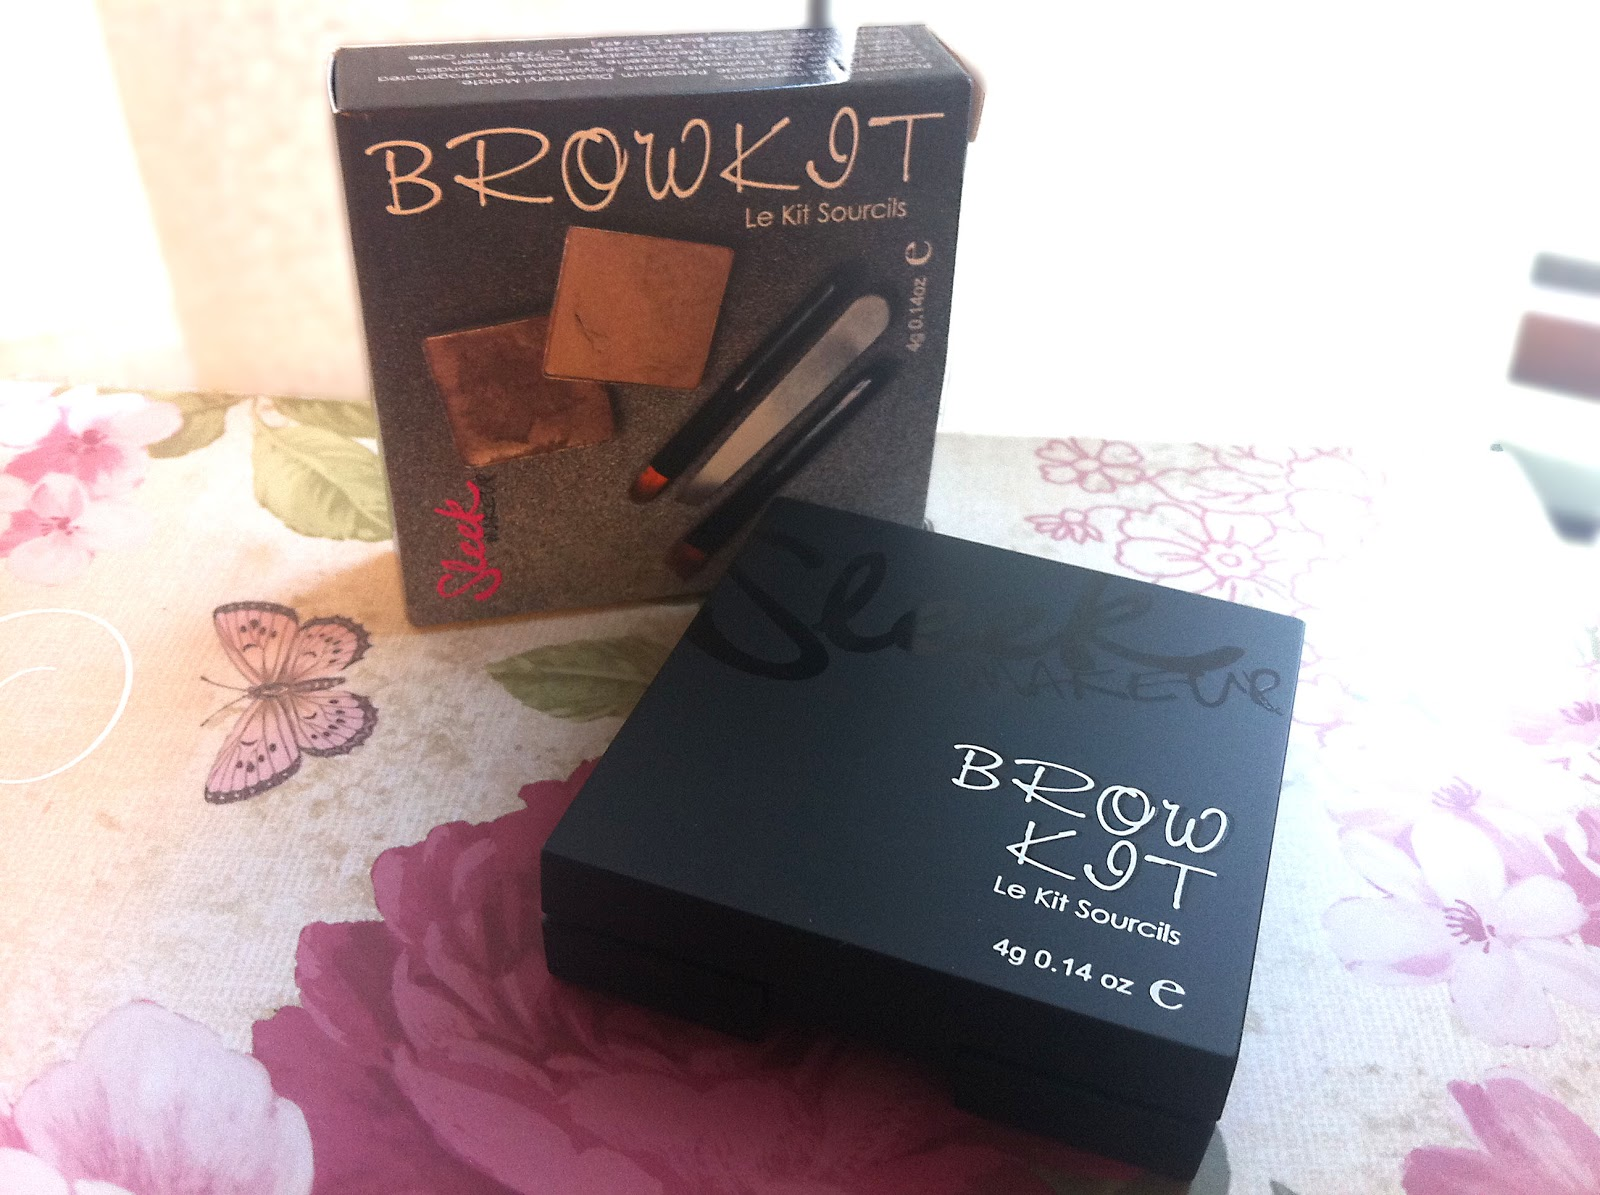 Birds Words Beauty Fashion Lifestyle Sleek Brow Kit Review A